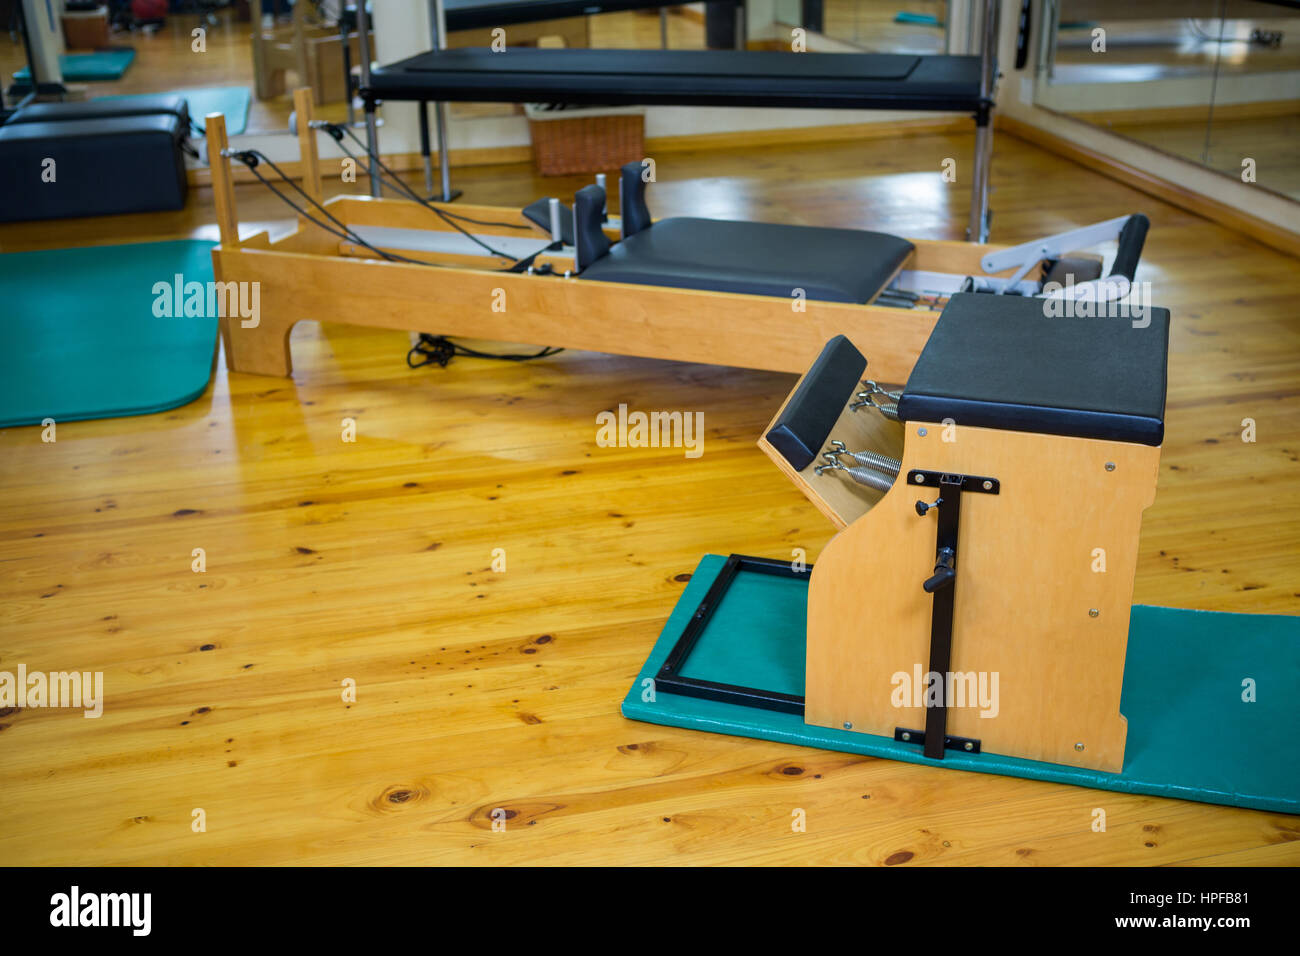 Reformer and wunda chair on wooden floor in gym - Stock Image